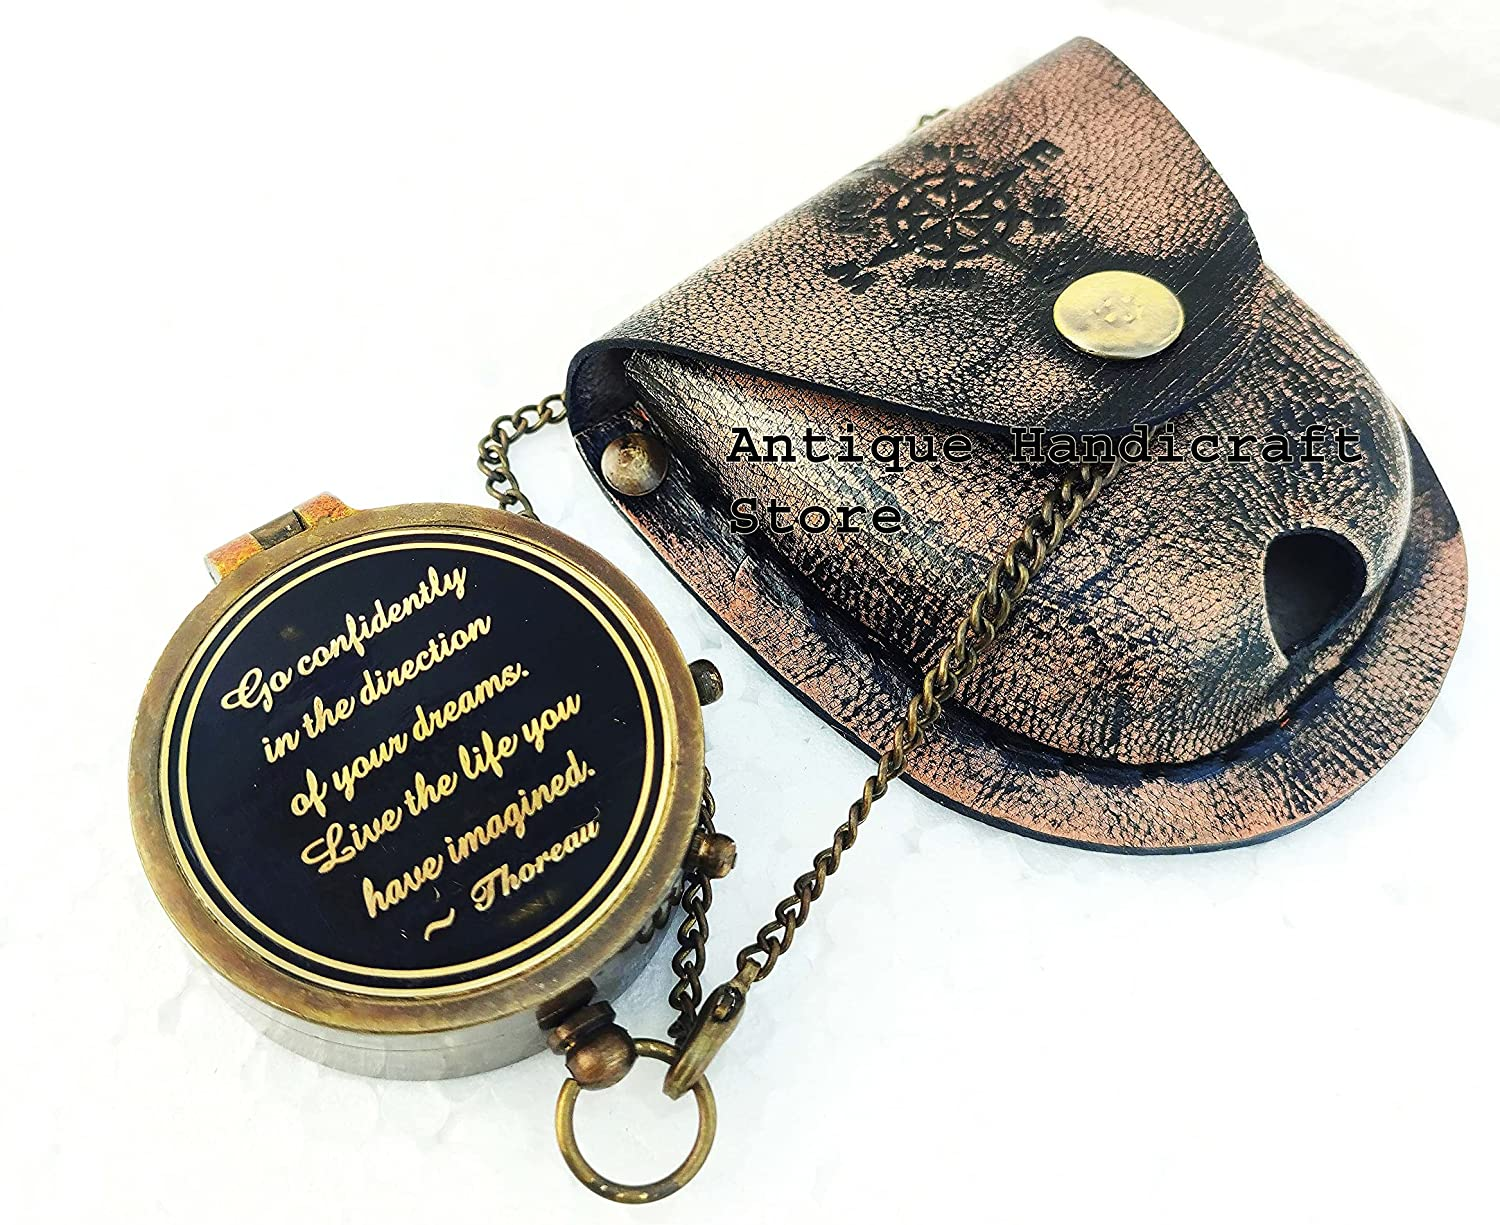 Antique Handicraft Store Brass Compass with Thoreau's Engraved Special sale item Tulsa Mall G